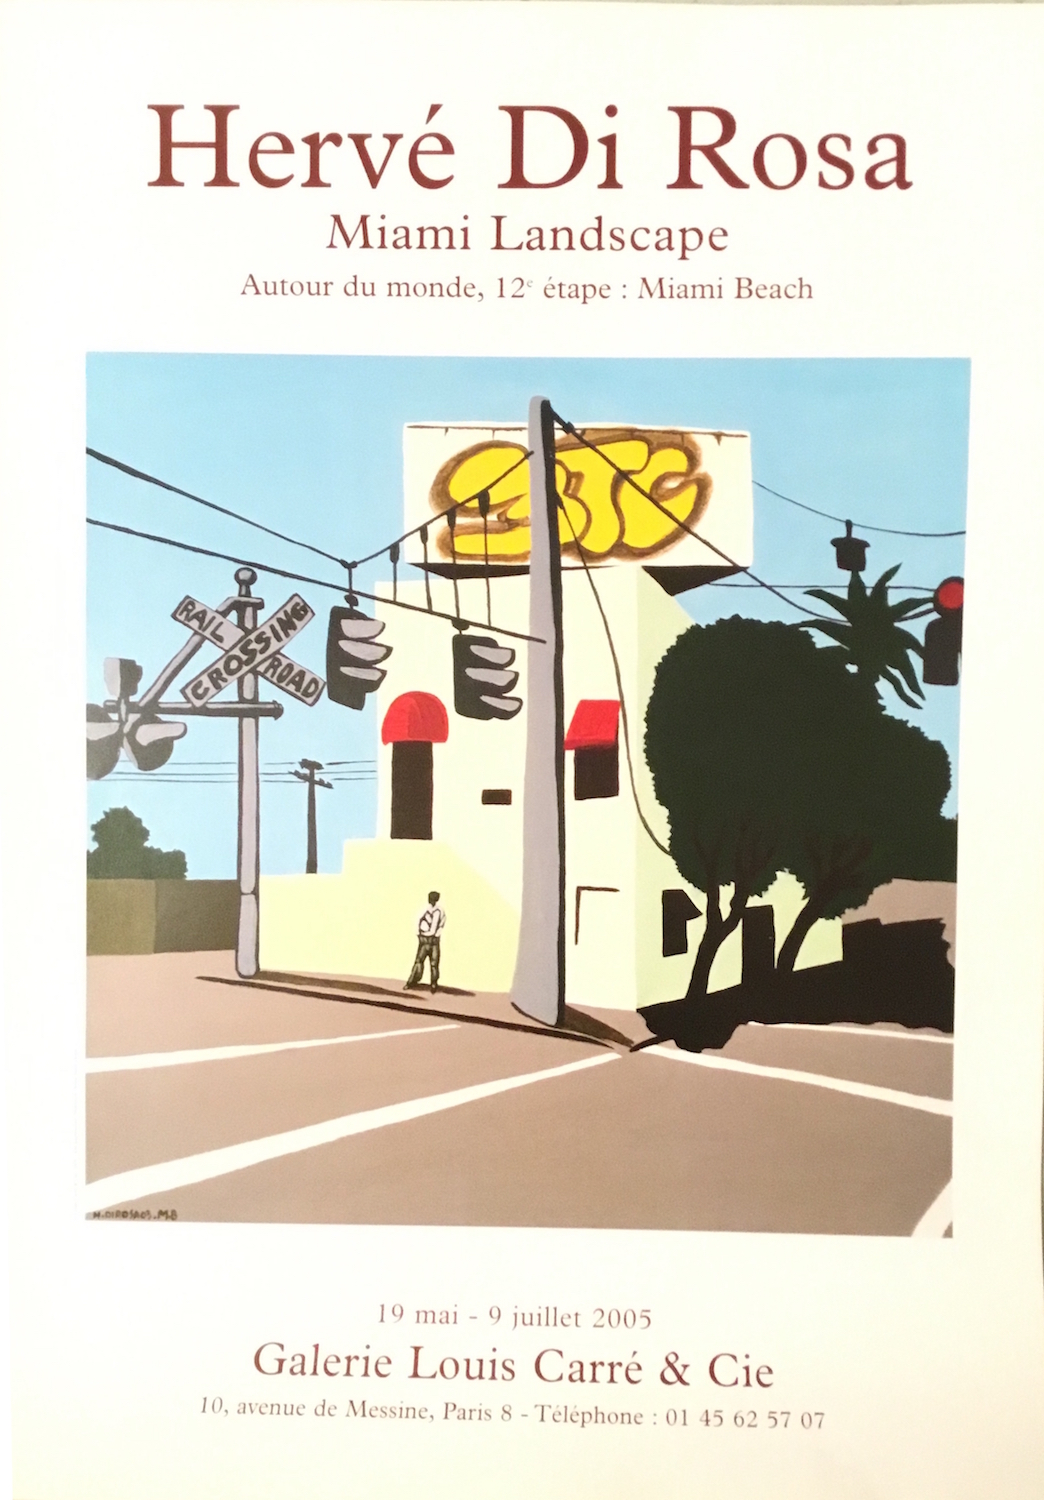 exposition Miami landscape, galerie Louis Carré, Paris 2005